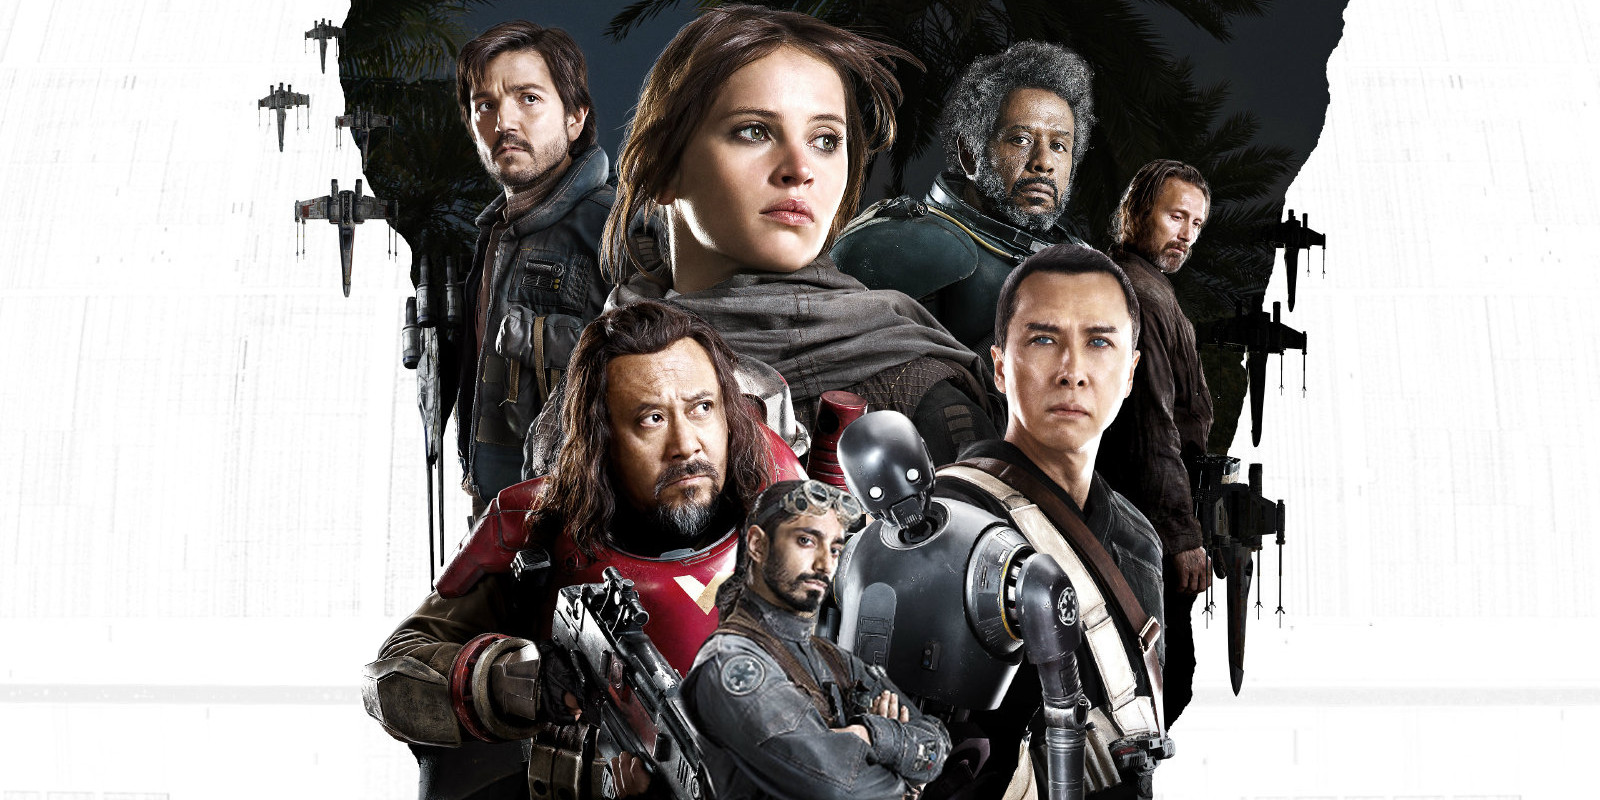 Rogue One Character Poster Star Wars: Rogue One Soundtrack Tracklist Revealed